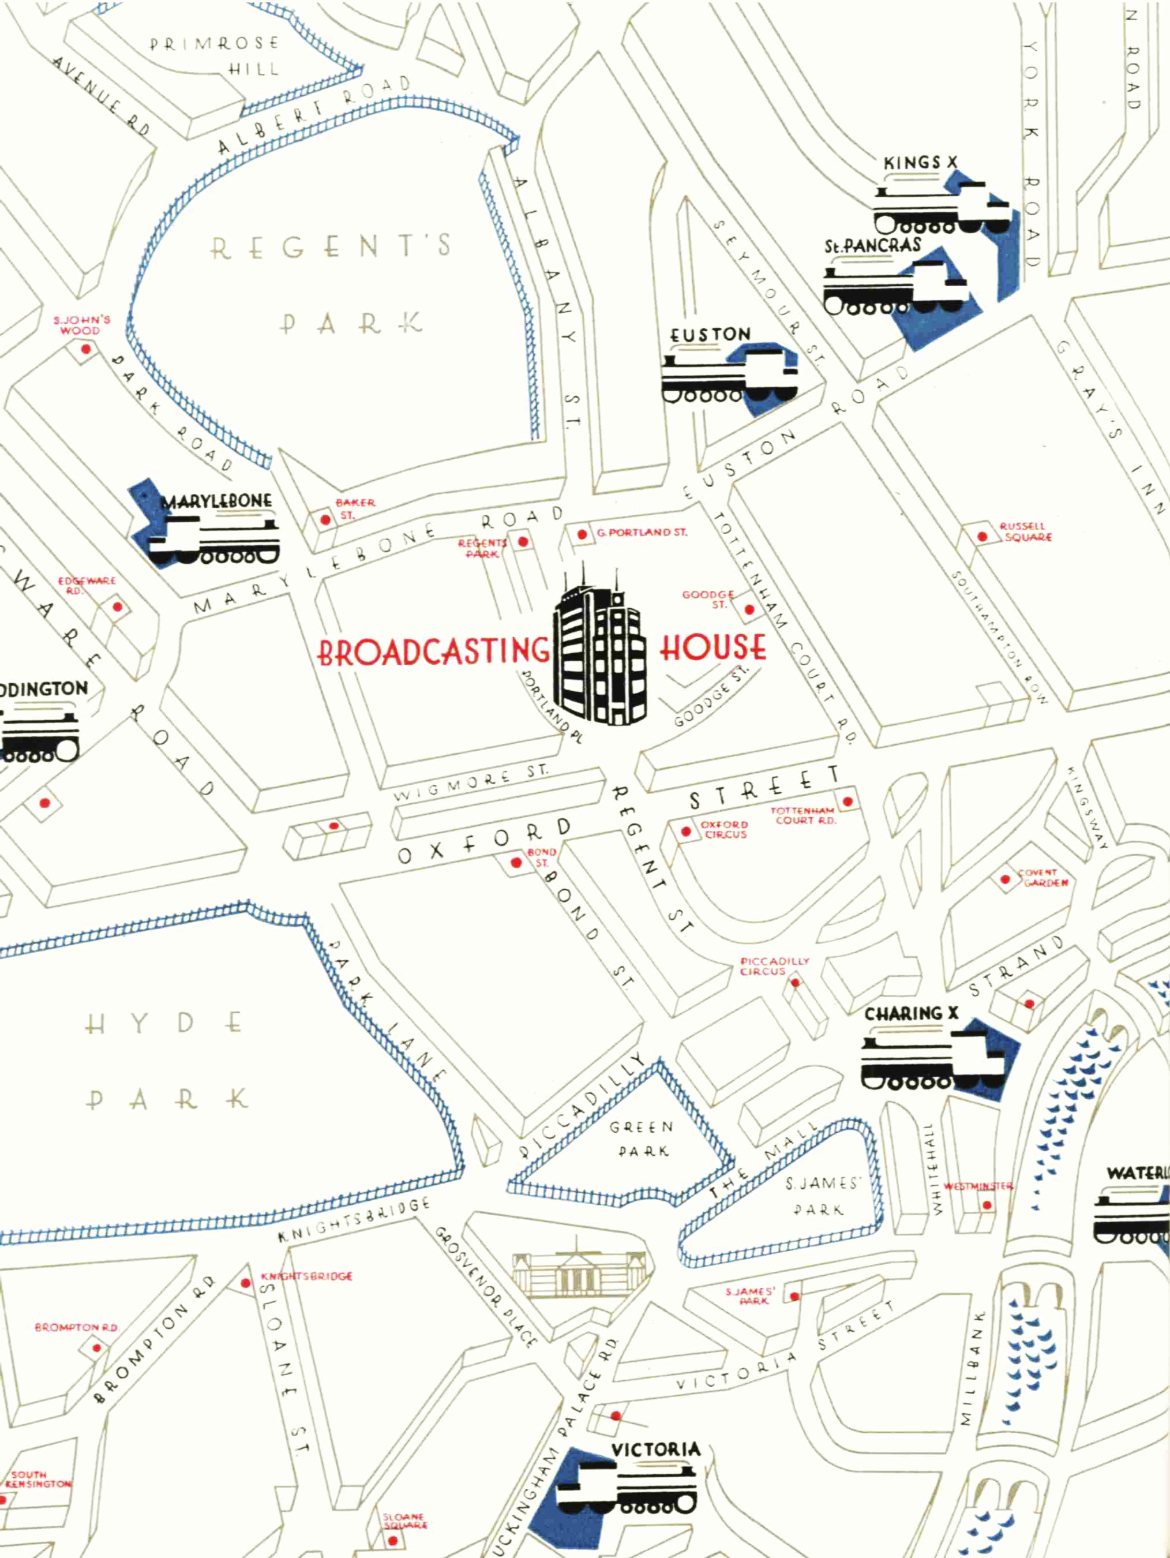 A map of the area of central London surrounding the new Broadcasting House building